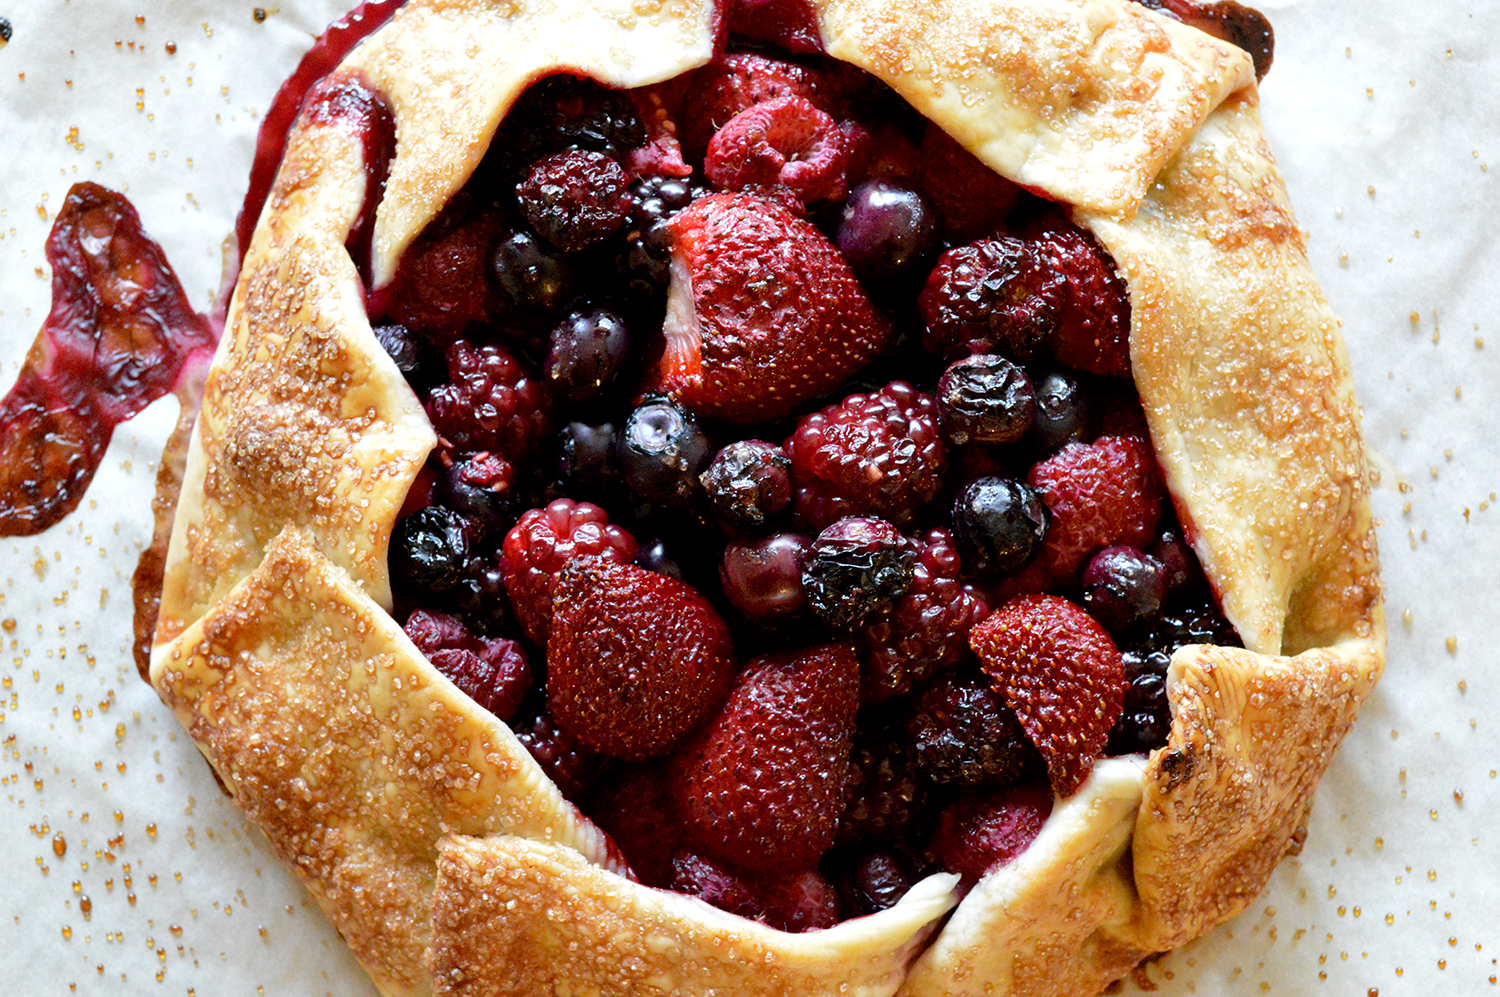 Berry-Pie-straight-on-www.cookingbydesign.com-copyright-2014_edited.jpg